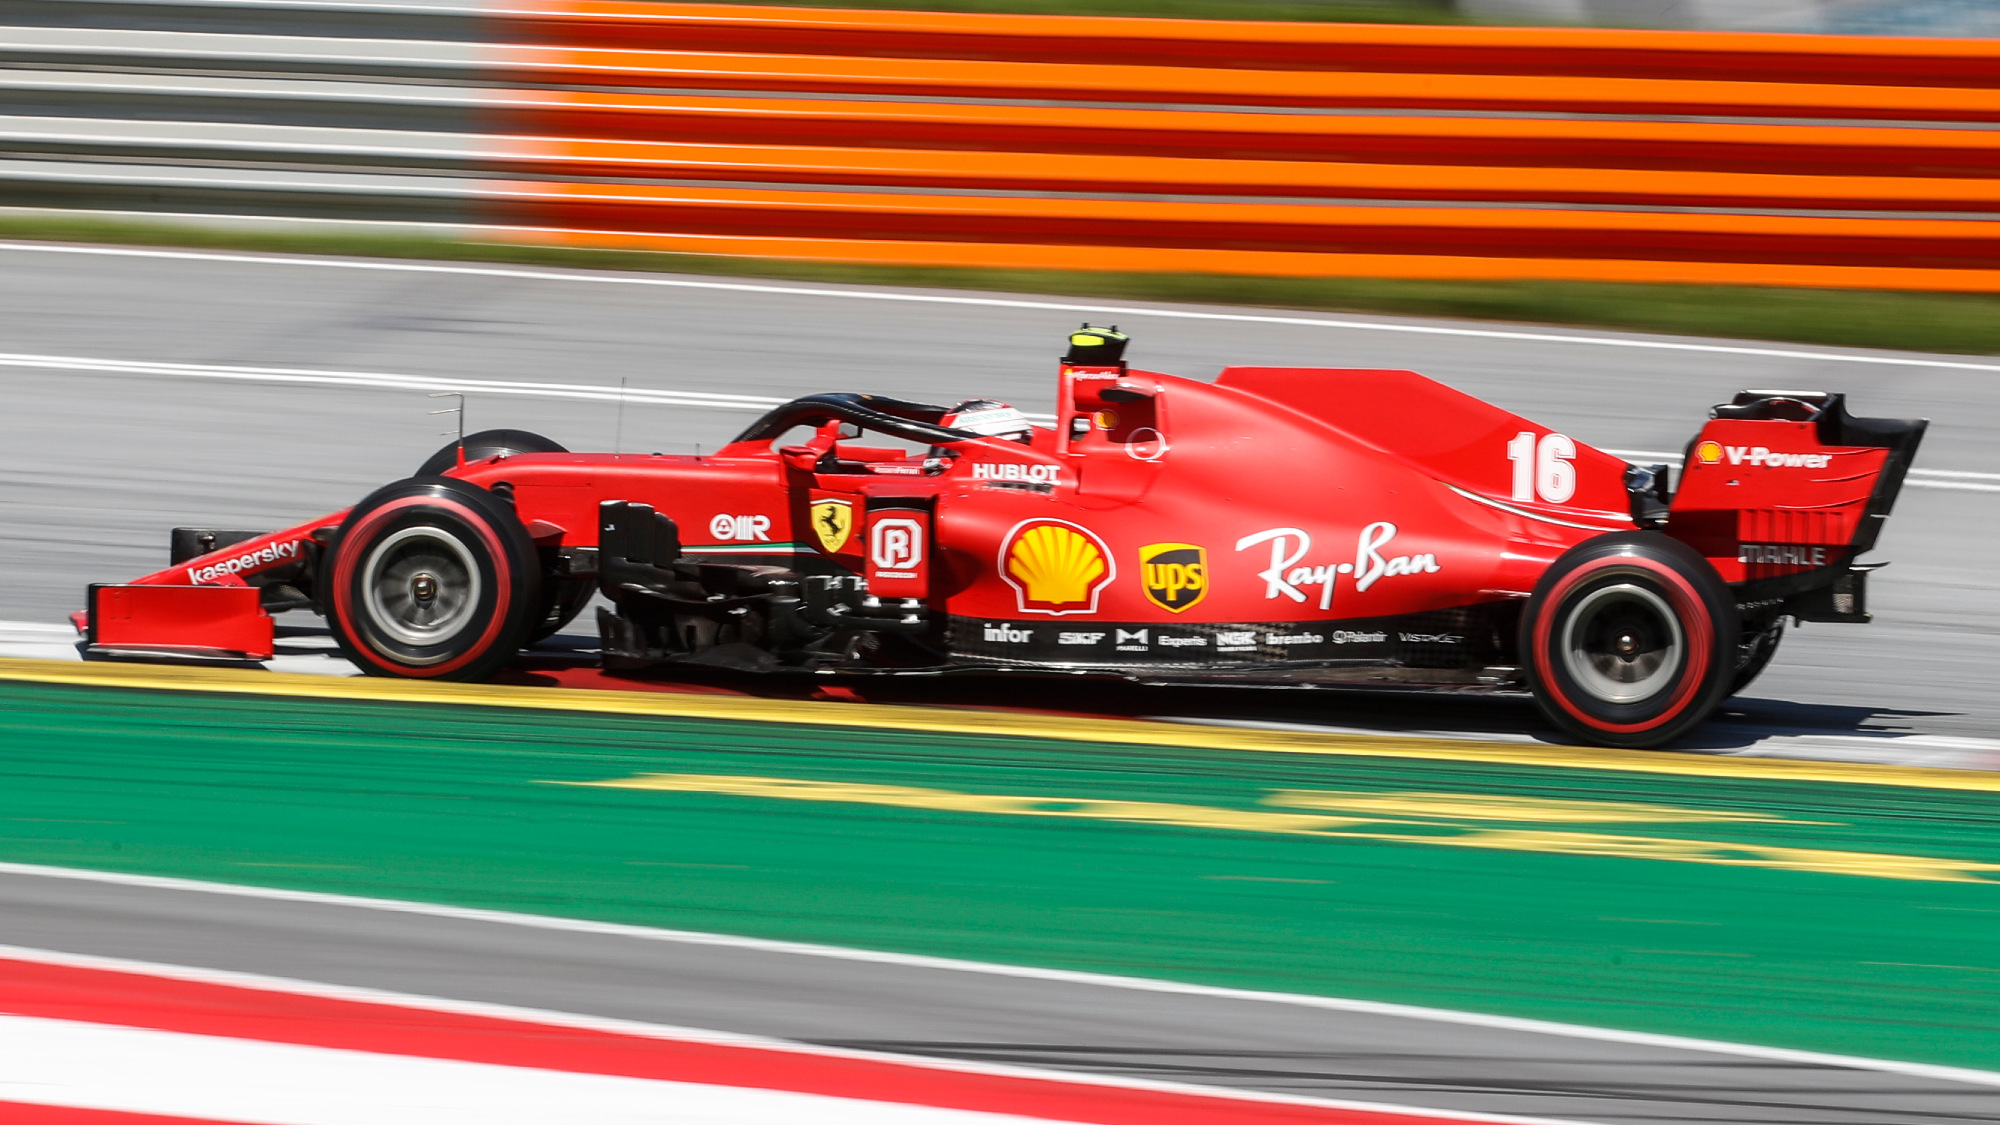 Ferrari fast-tracking aero updates for Styrian Grand Prix